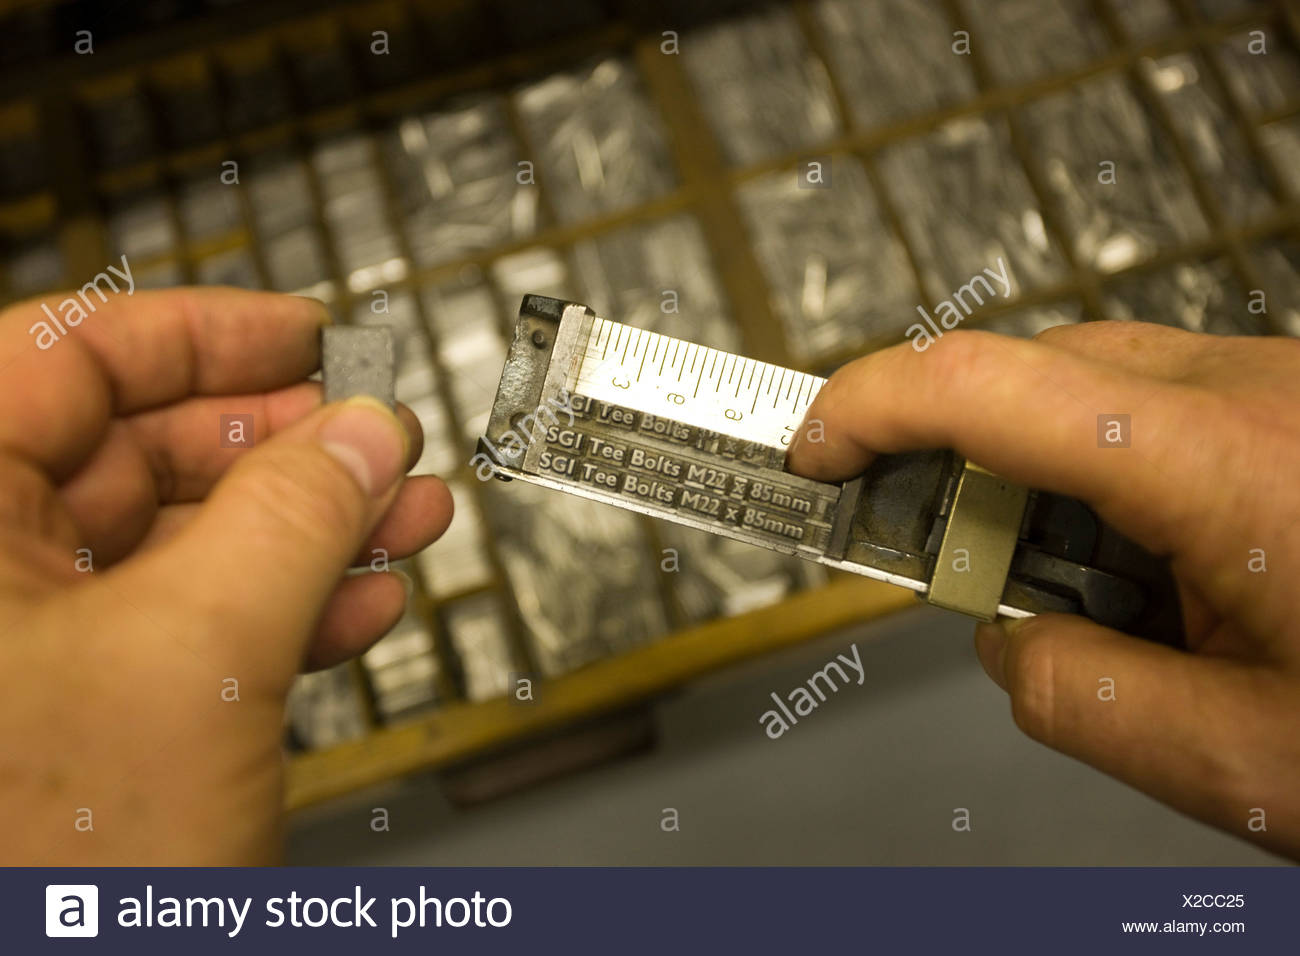 Compositor Stock Photos & Compositor Stock Images - Alamy